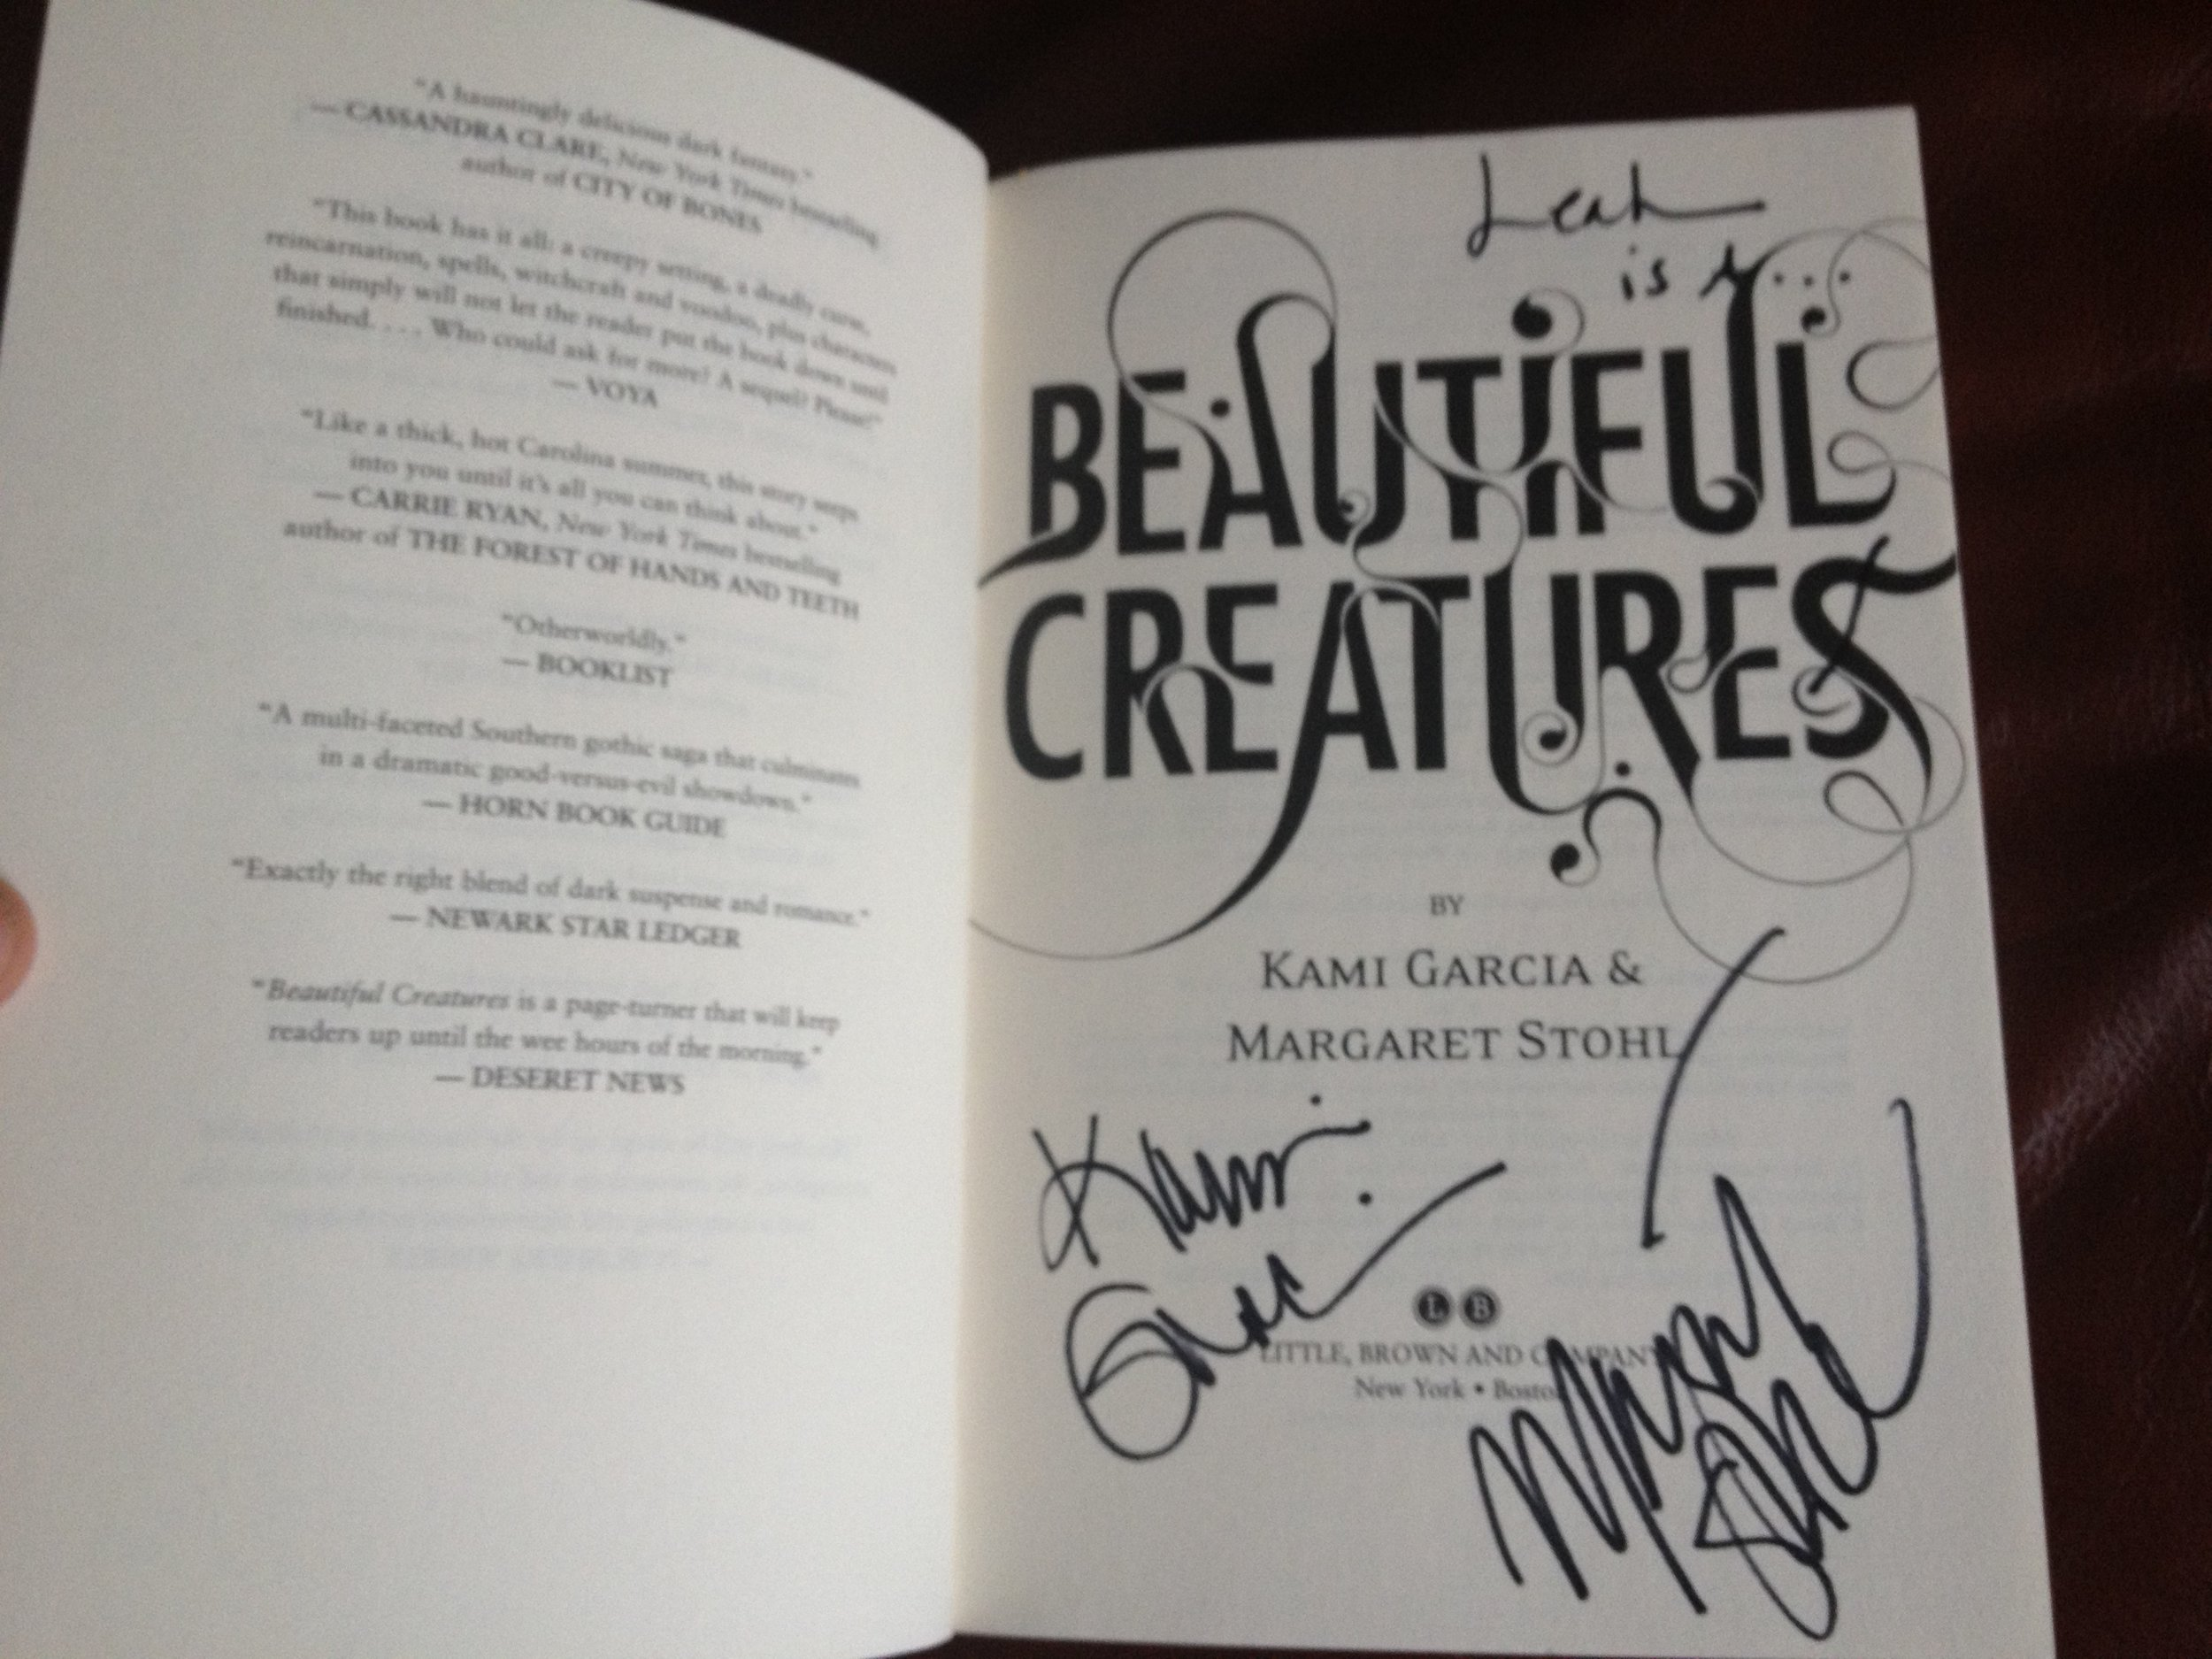 margaret-stohl-kami-garcia-beautiful-creatures